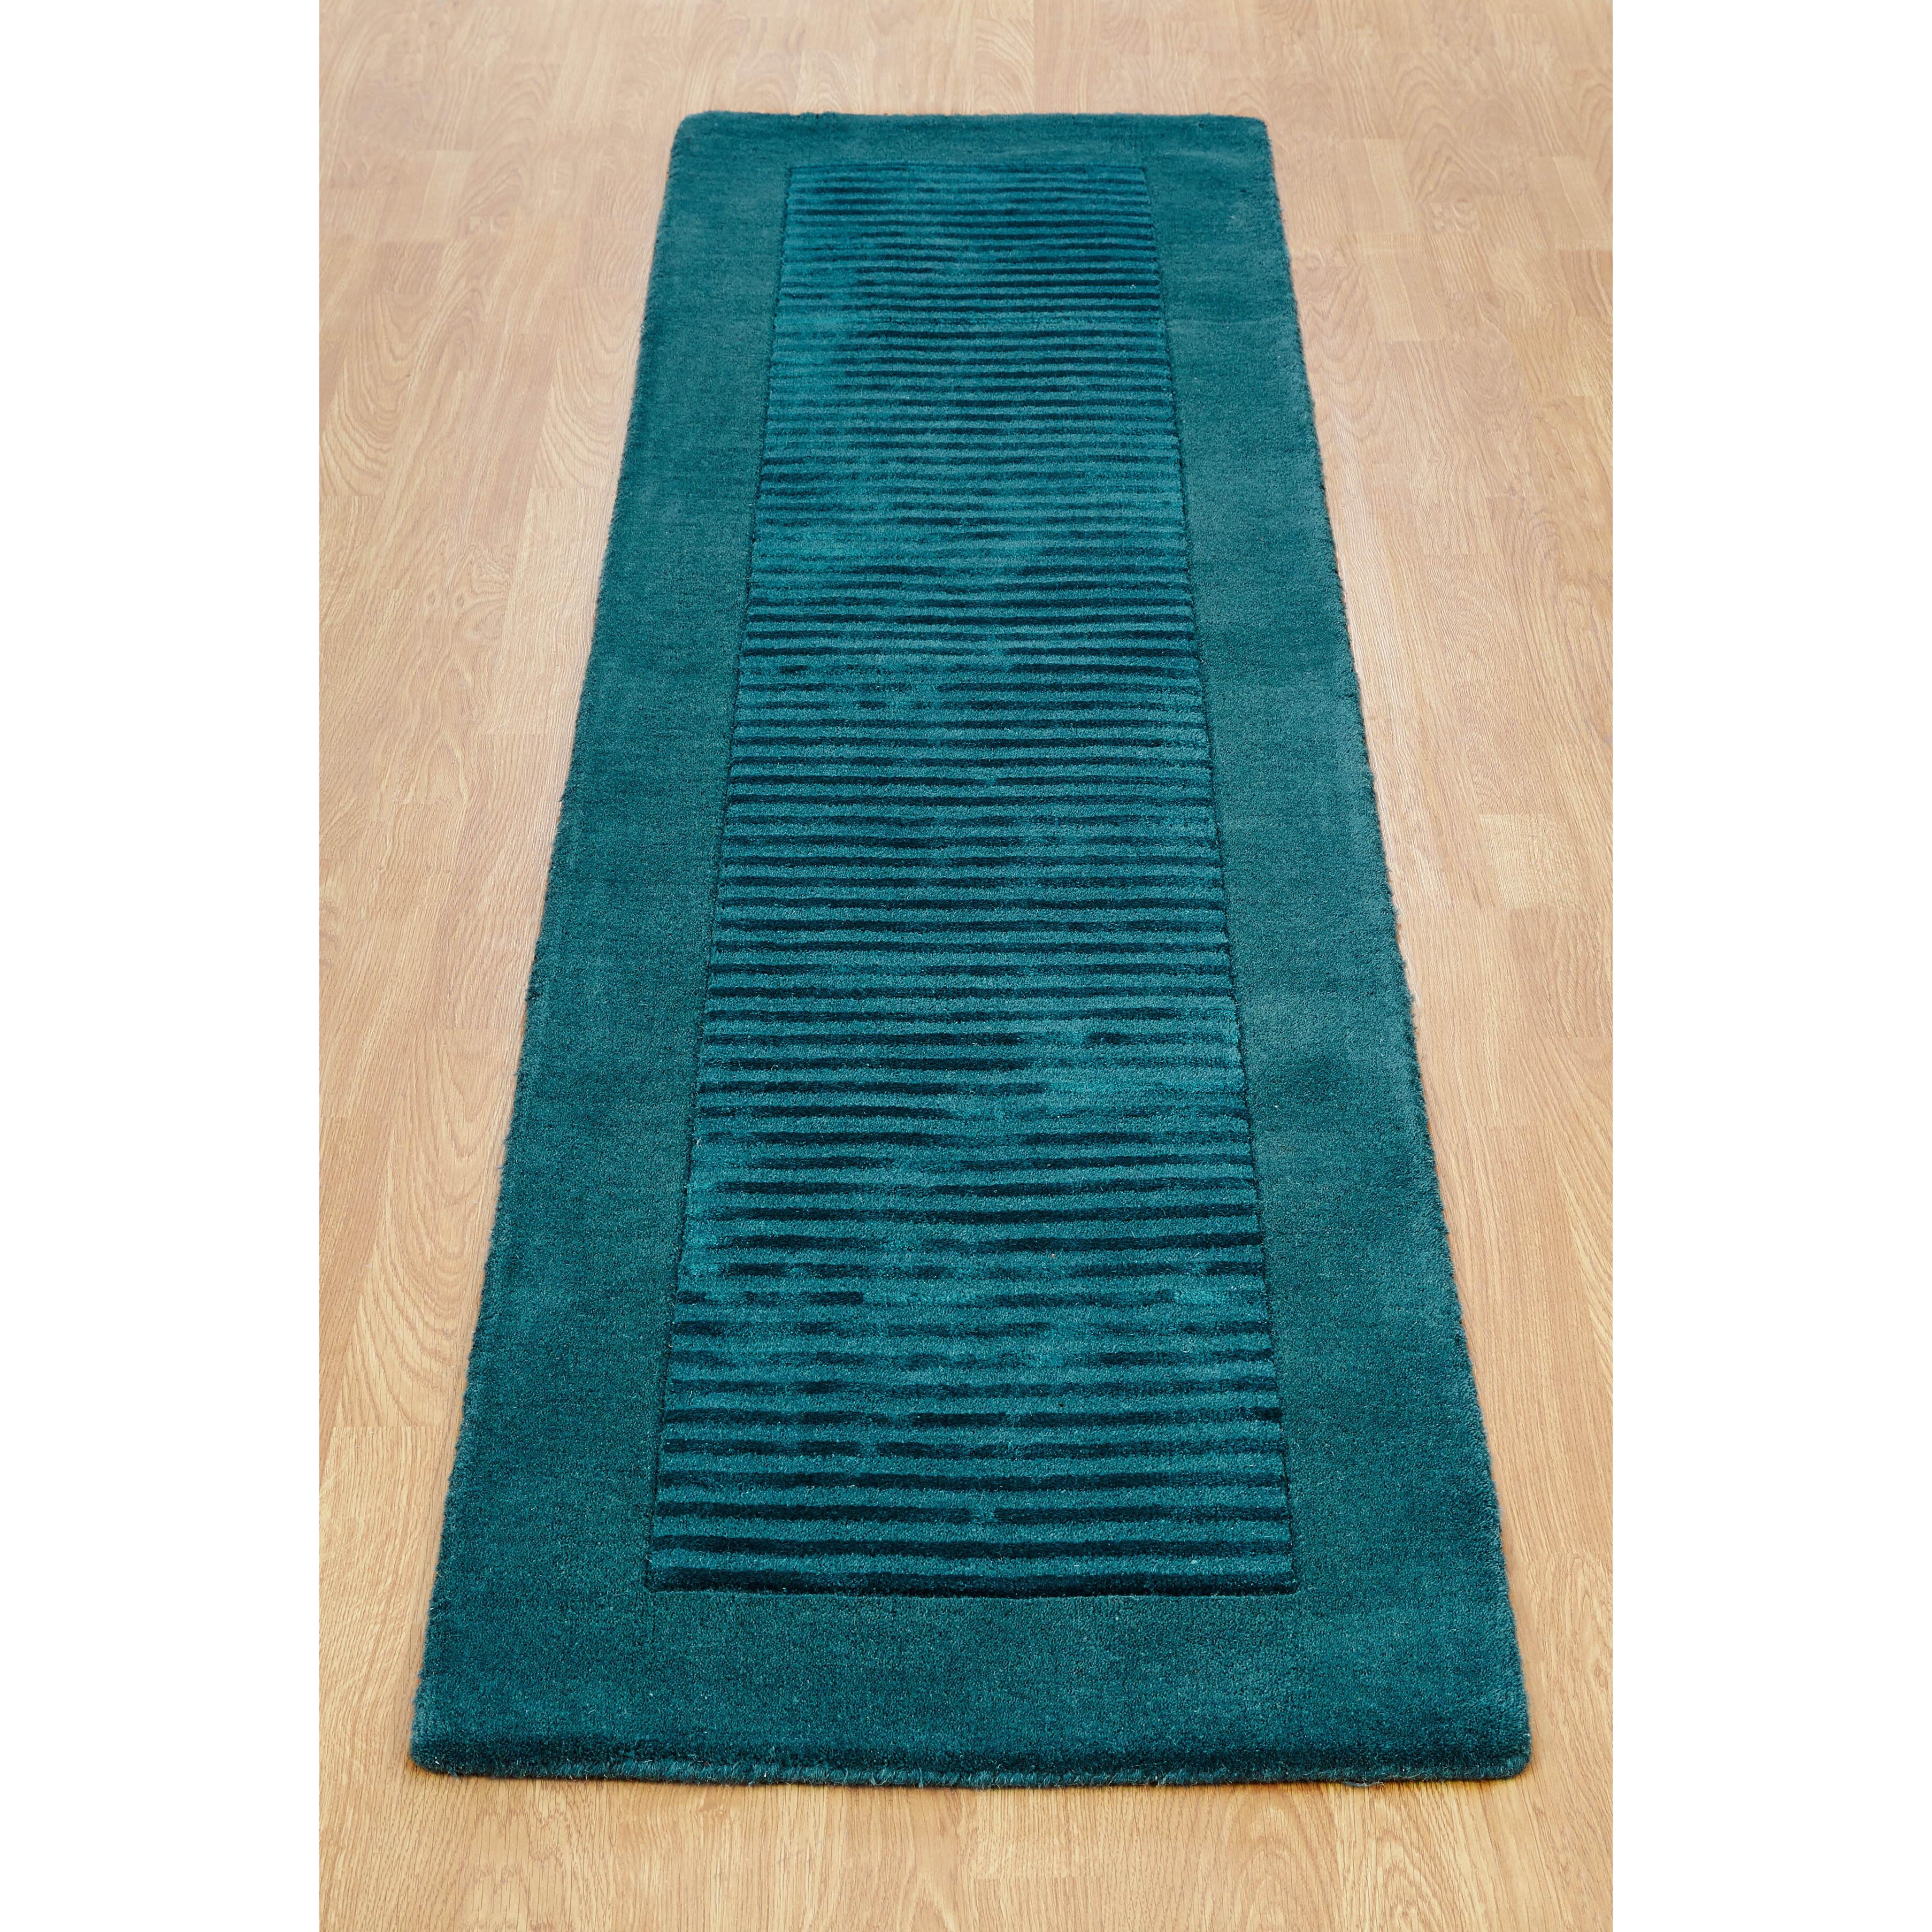 Brook Lane Rugs Henley Hand-Woven Teal Area Rug & Reviews